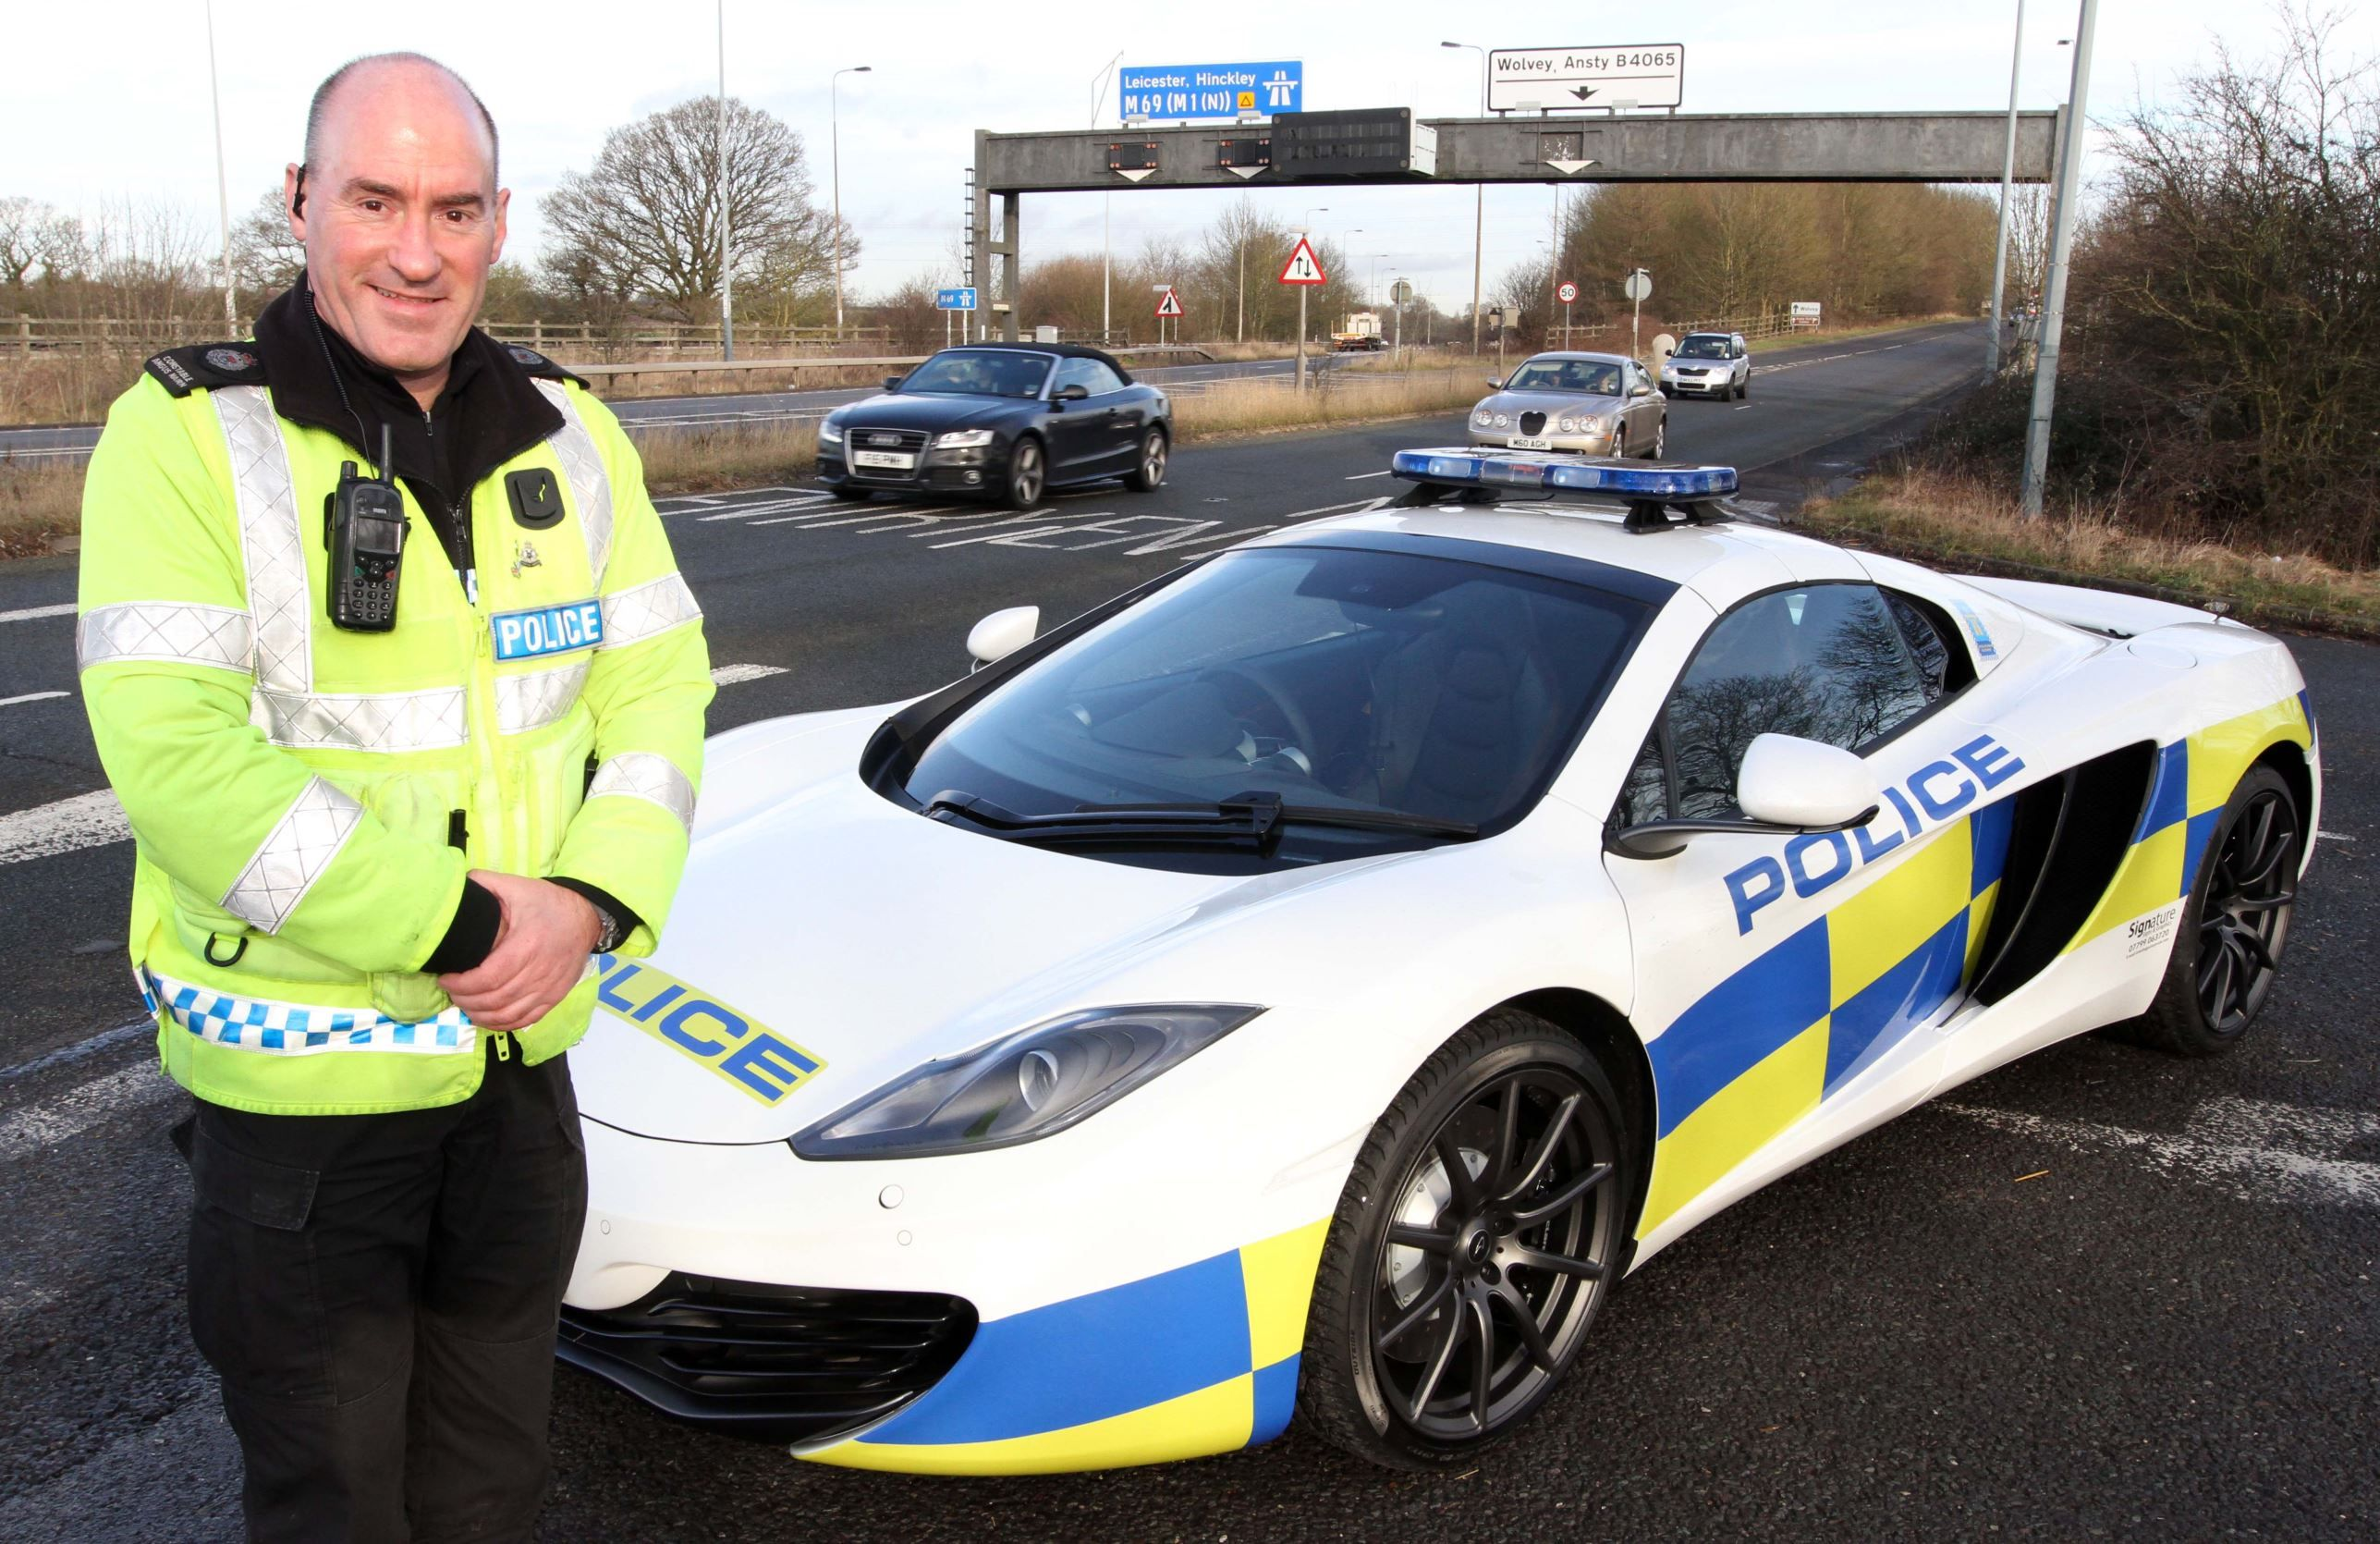 High Speed Chase The World S Hottest Police Cars Police Cars Police British Police Cars